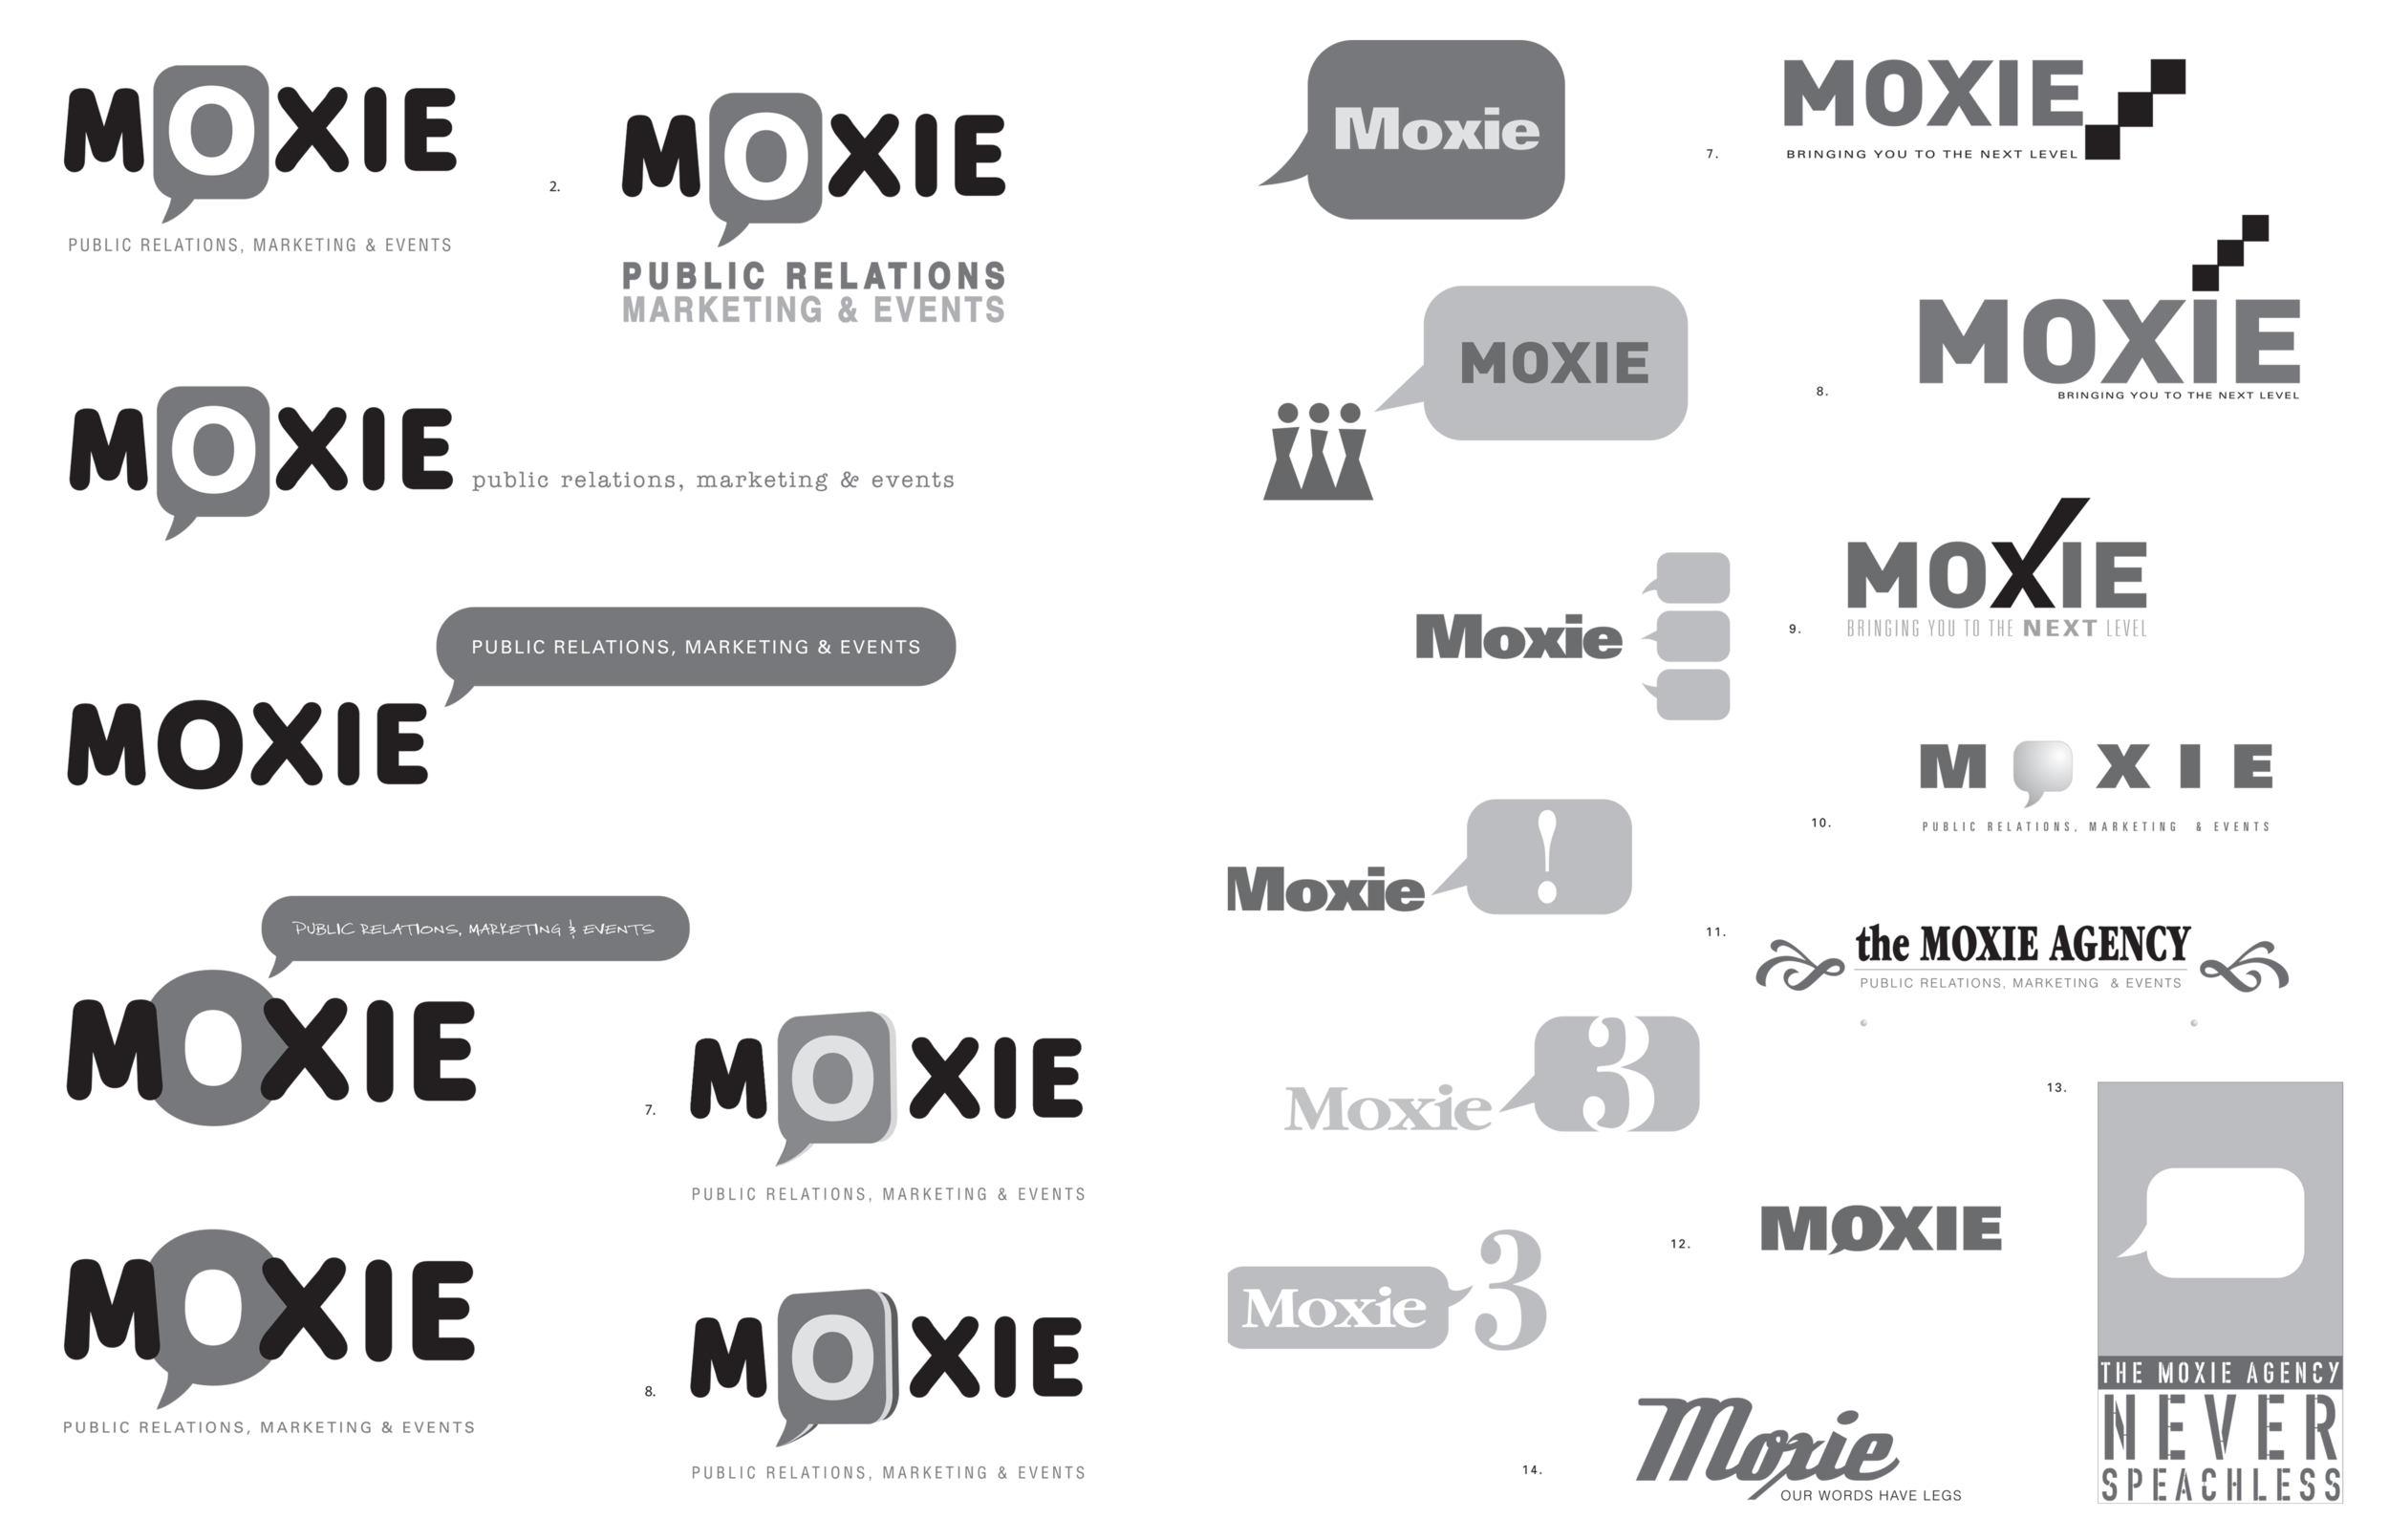 inkedesign-moxie-Process.png